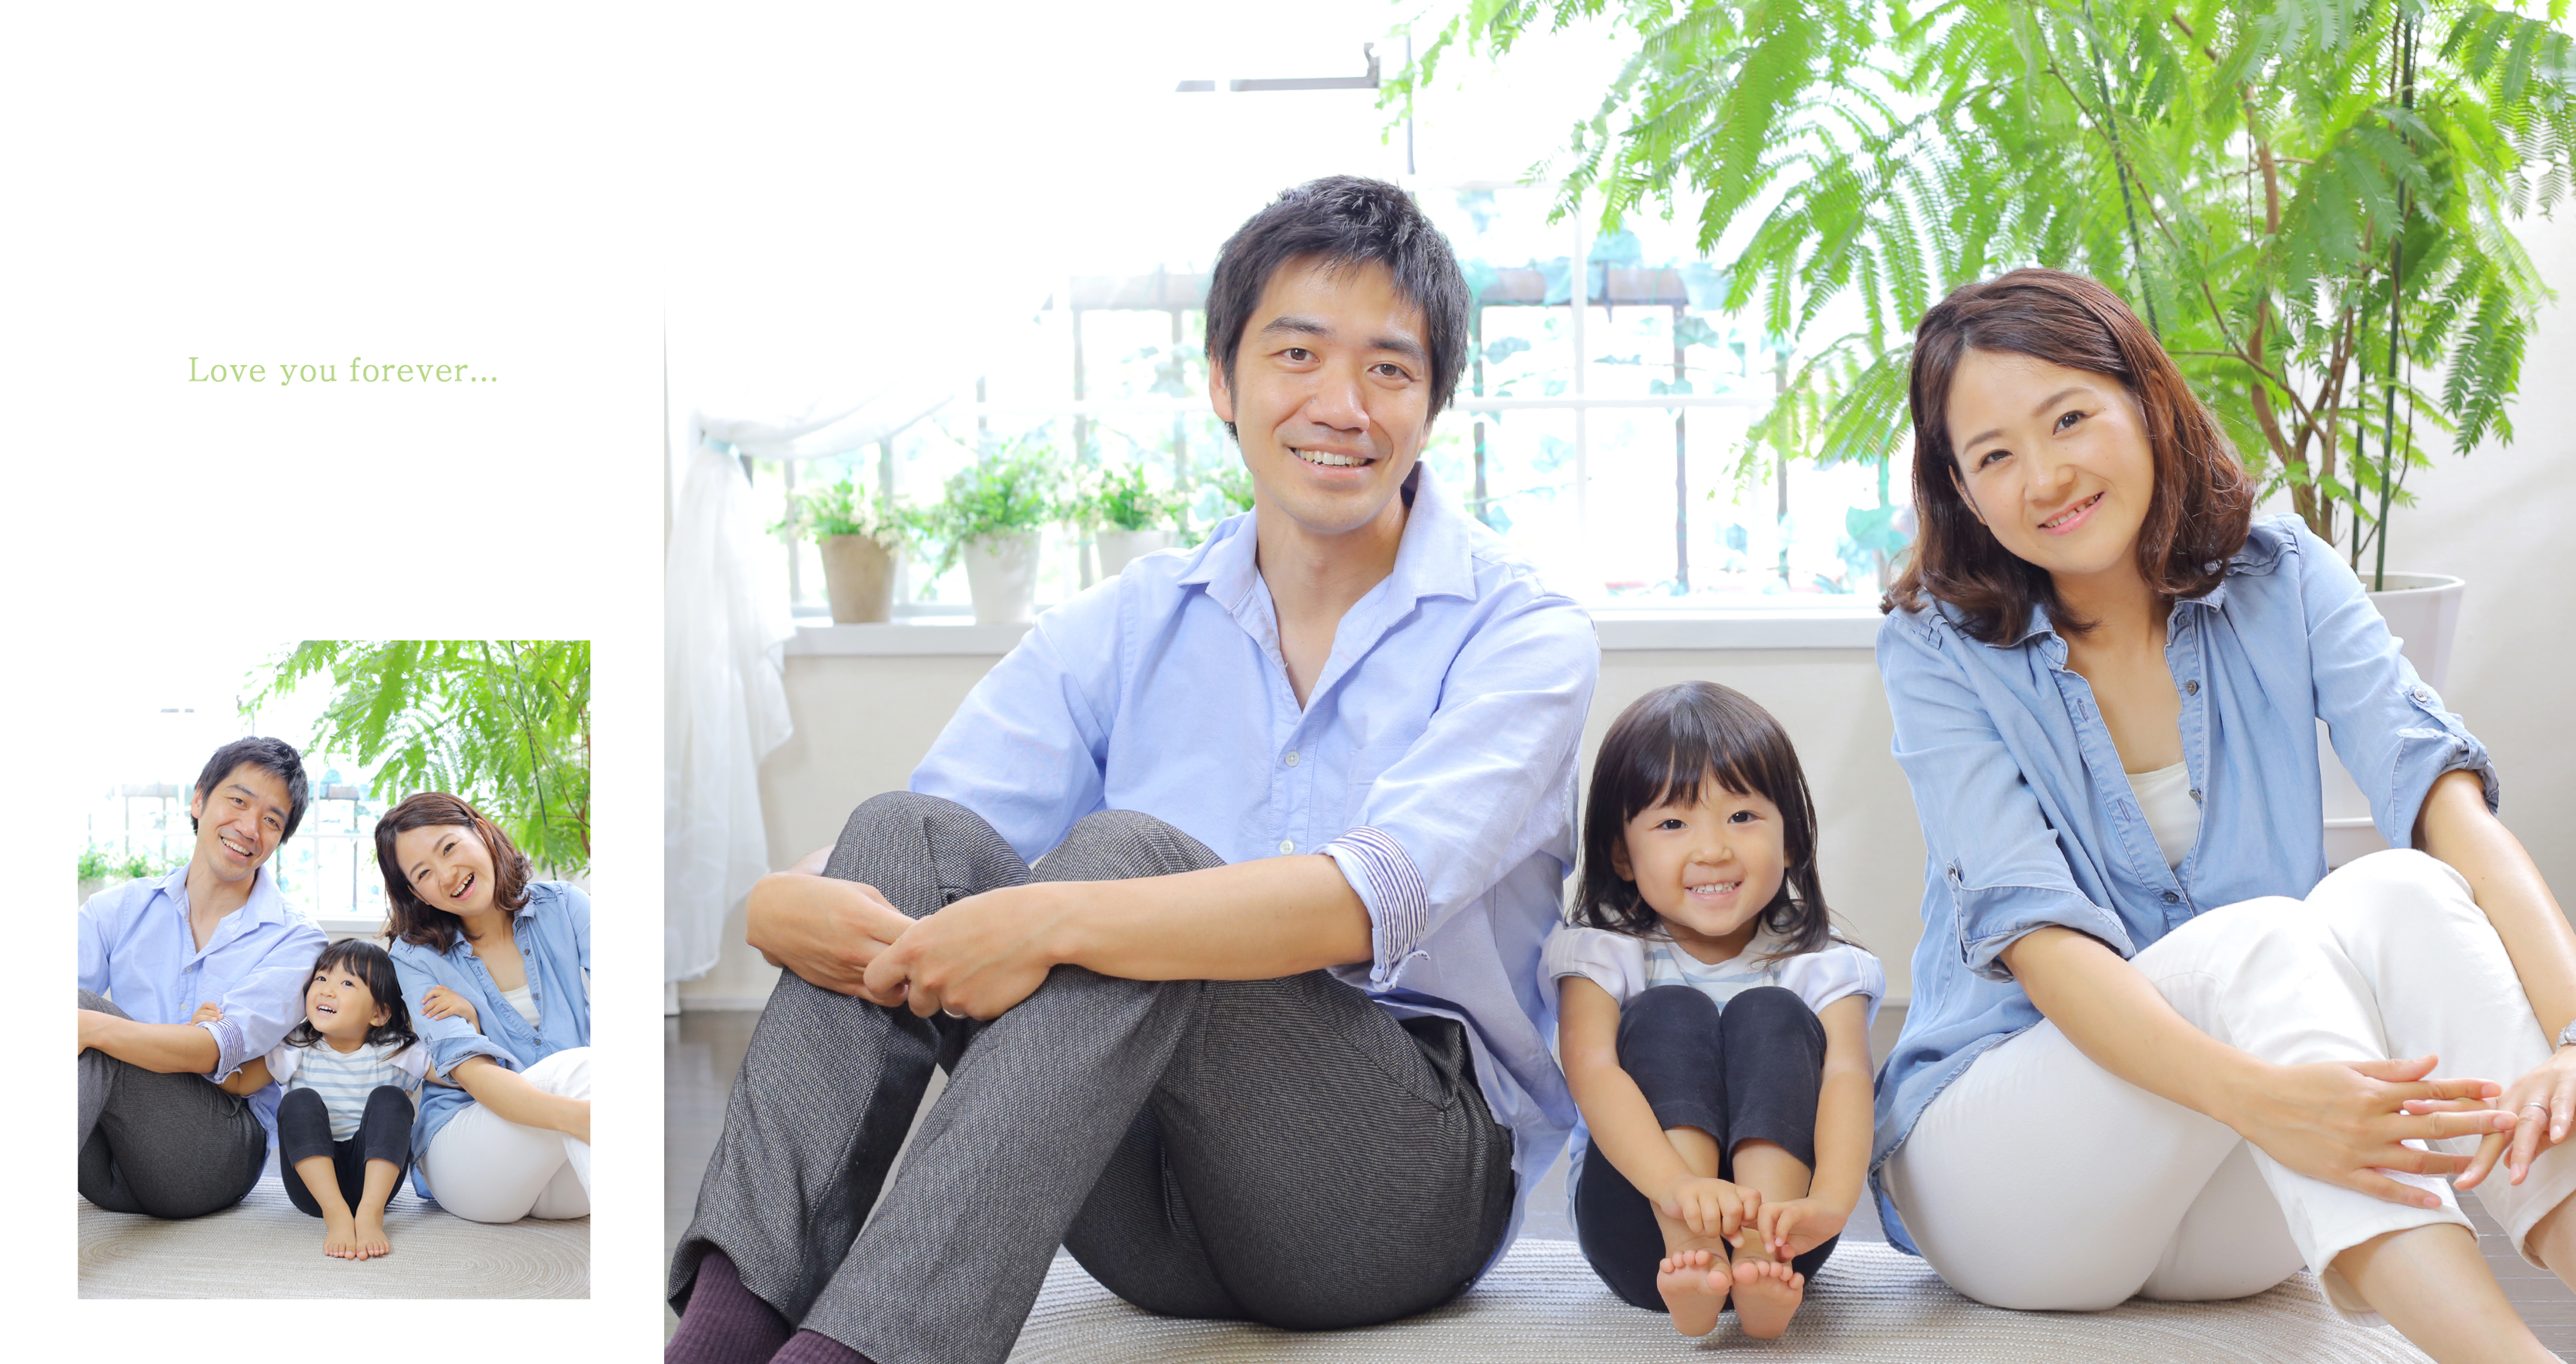 littletree family48.JPG